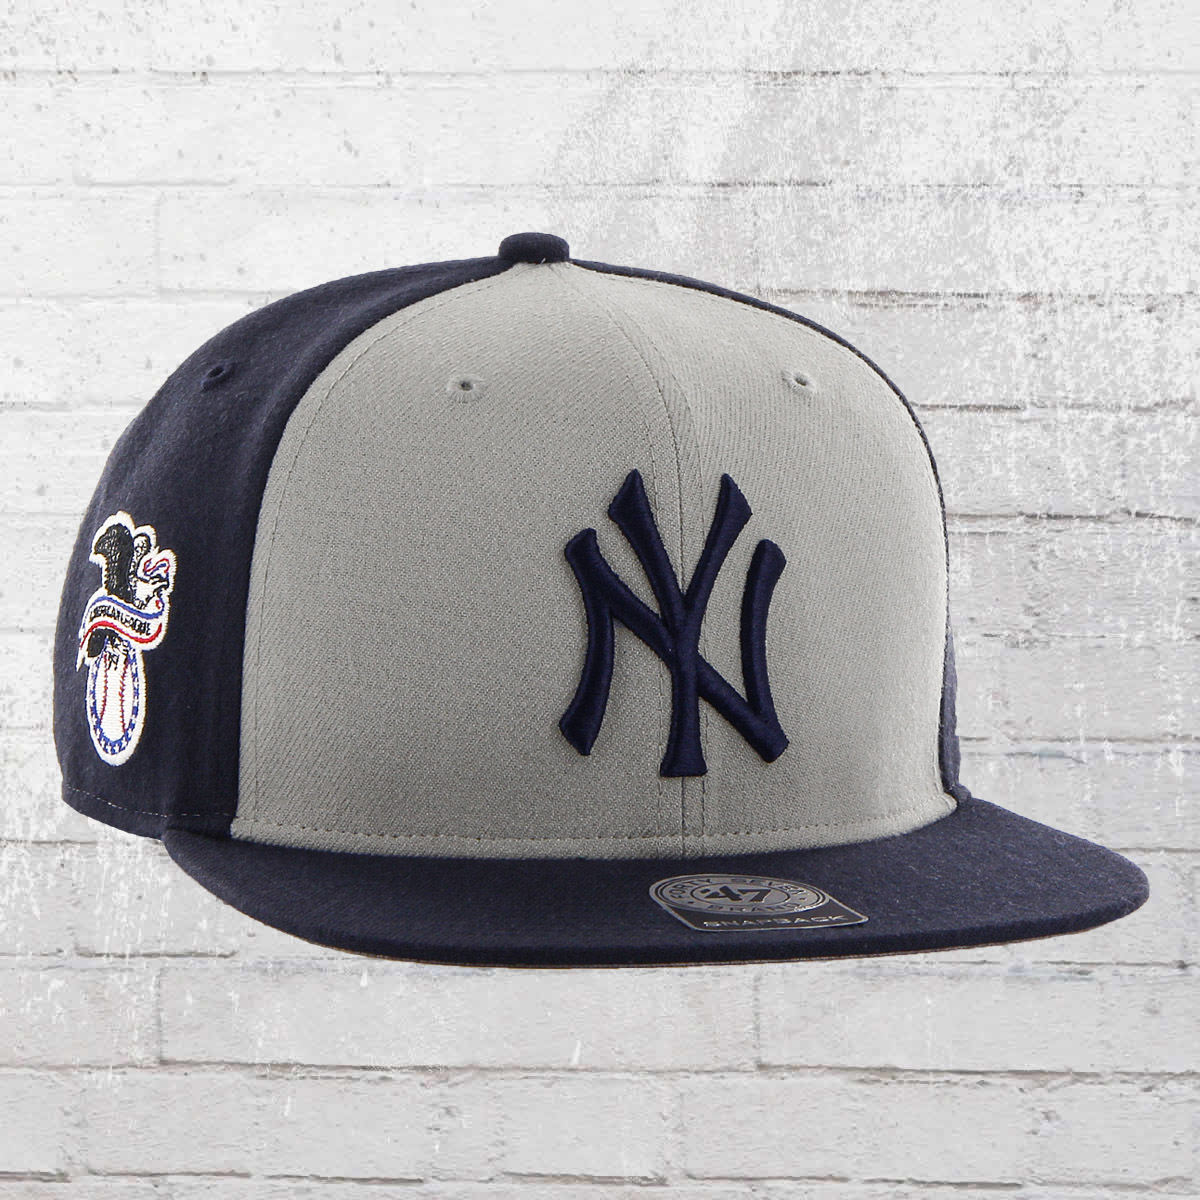 jetzt bestellen 47 brand mlb snapback cap new york. Black Bedroom Furniture Sets. Home Design Ideas